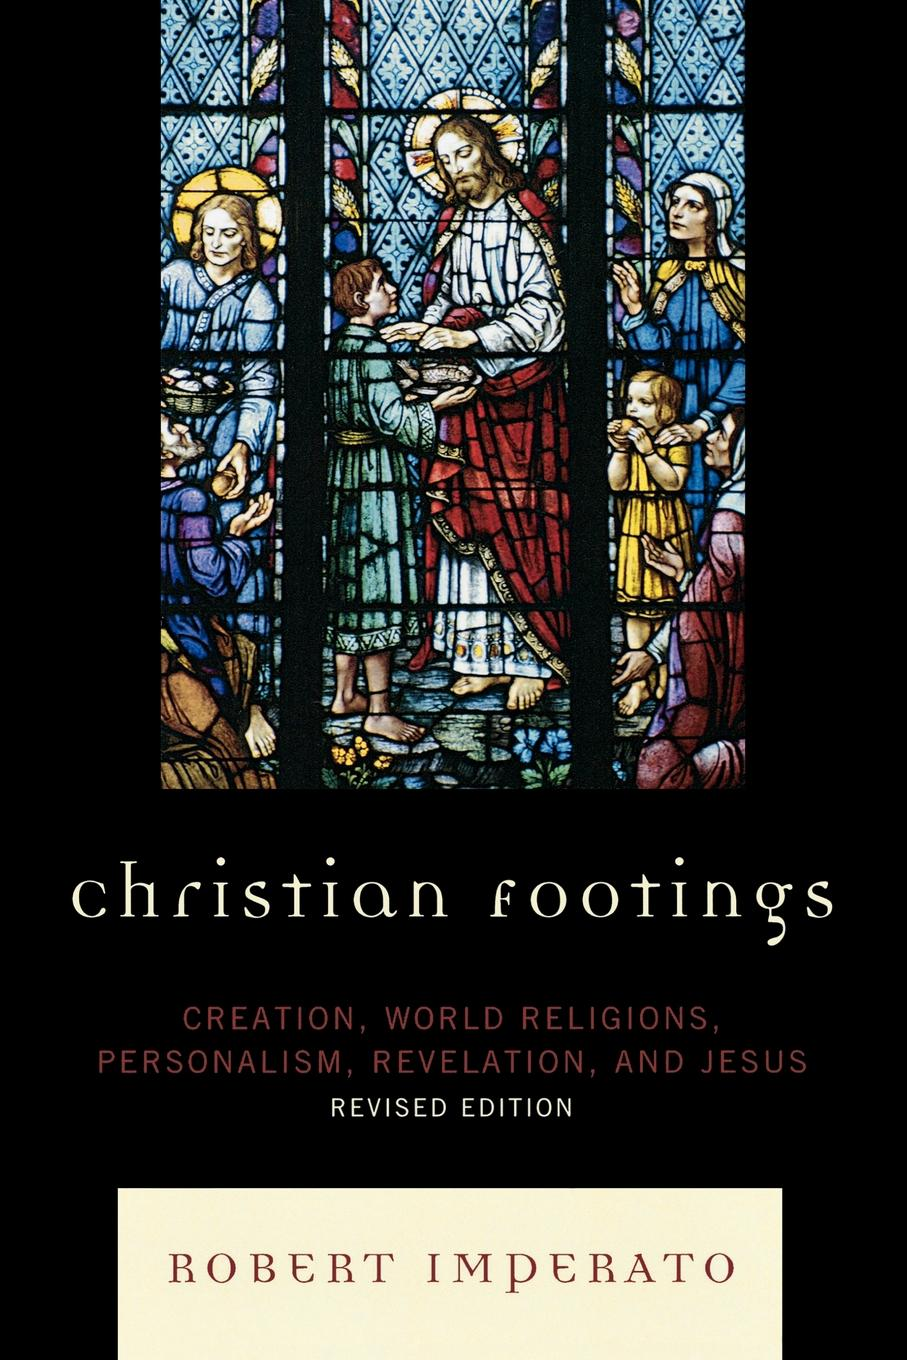 Christian Footings